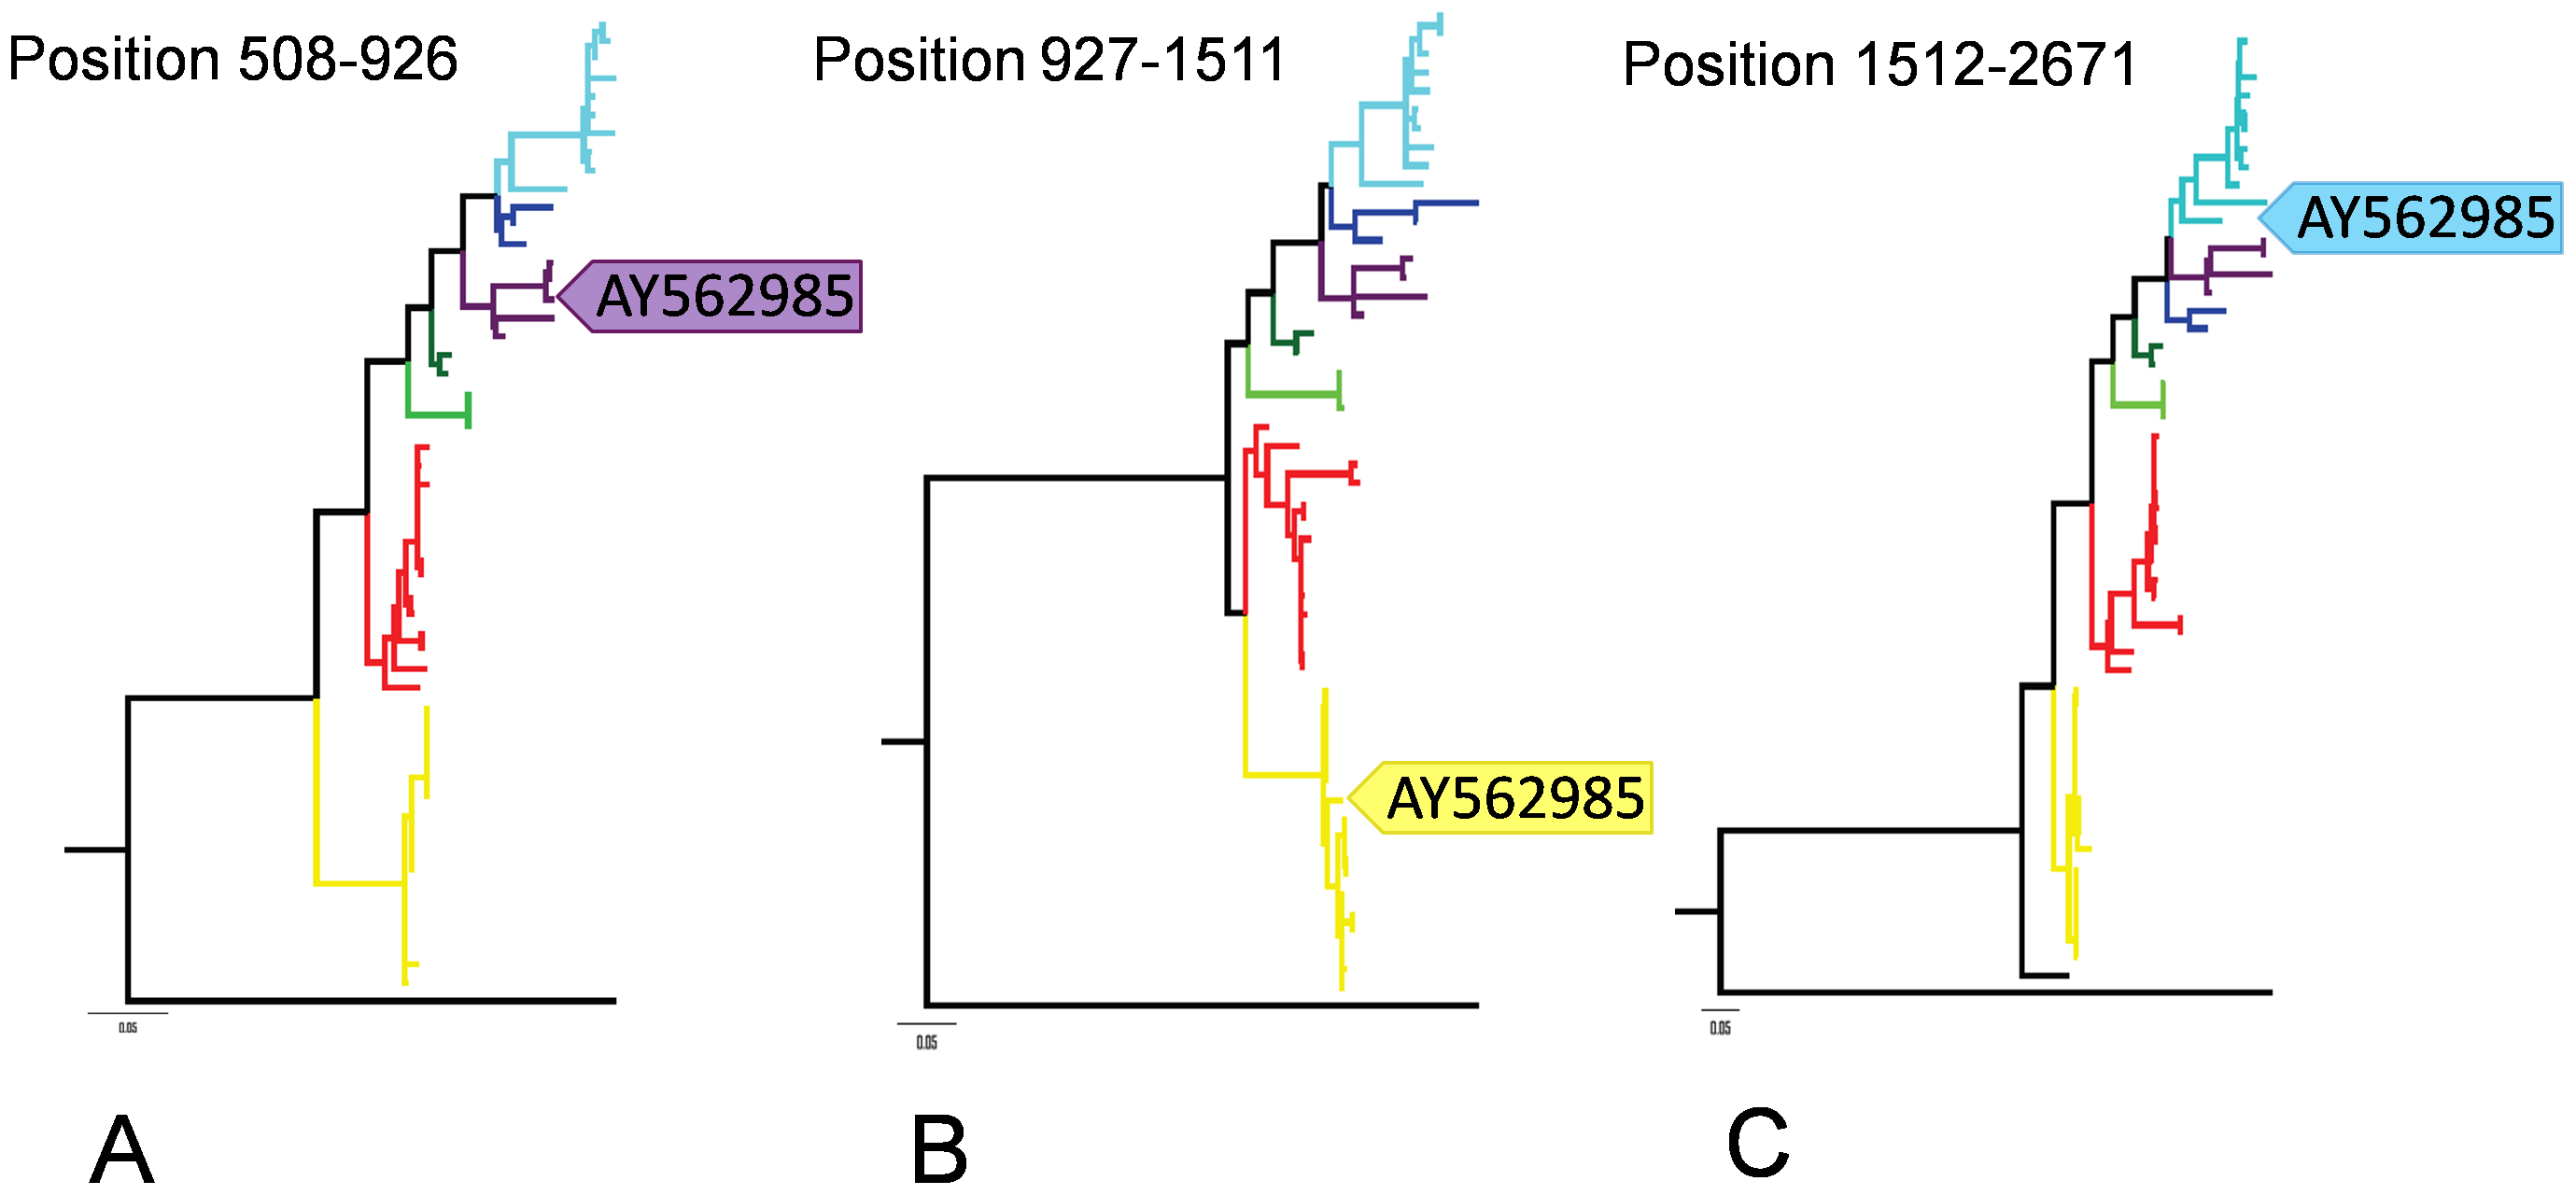 ML trees on the three putative recombinant regions identified in AY562985.